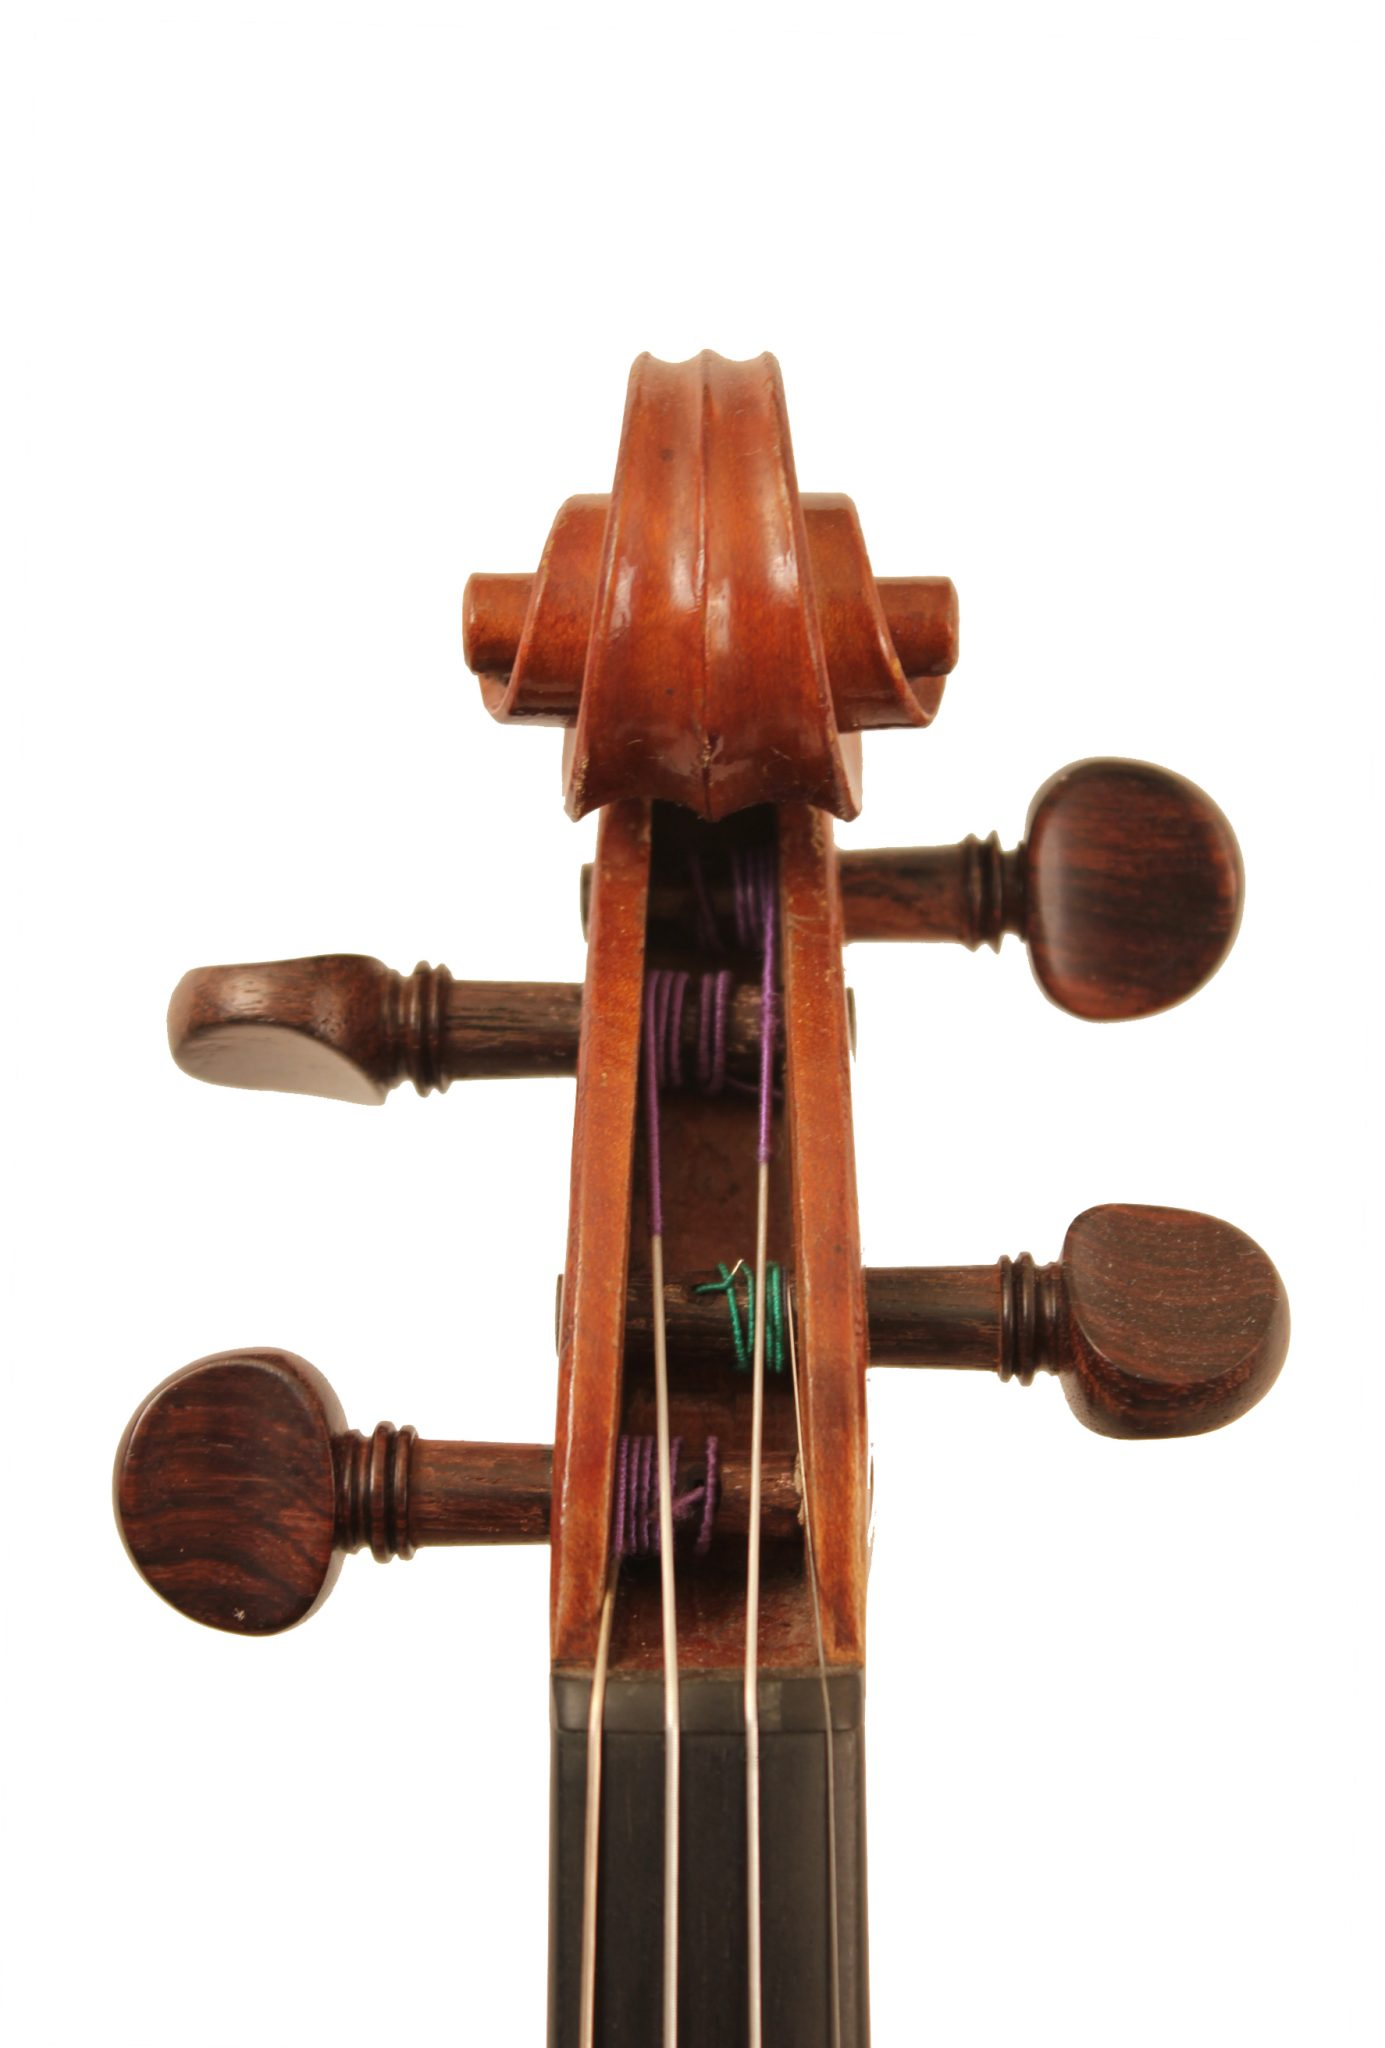 Violin by Nicholas Bertolini c.1890 for sale at Bridgewood and Neitzert London